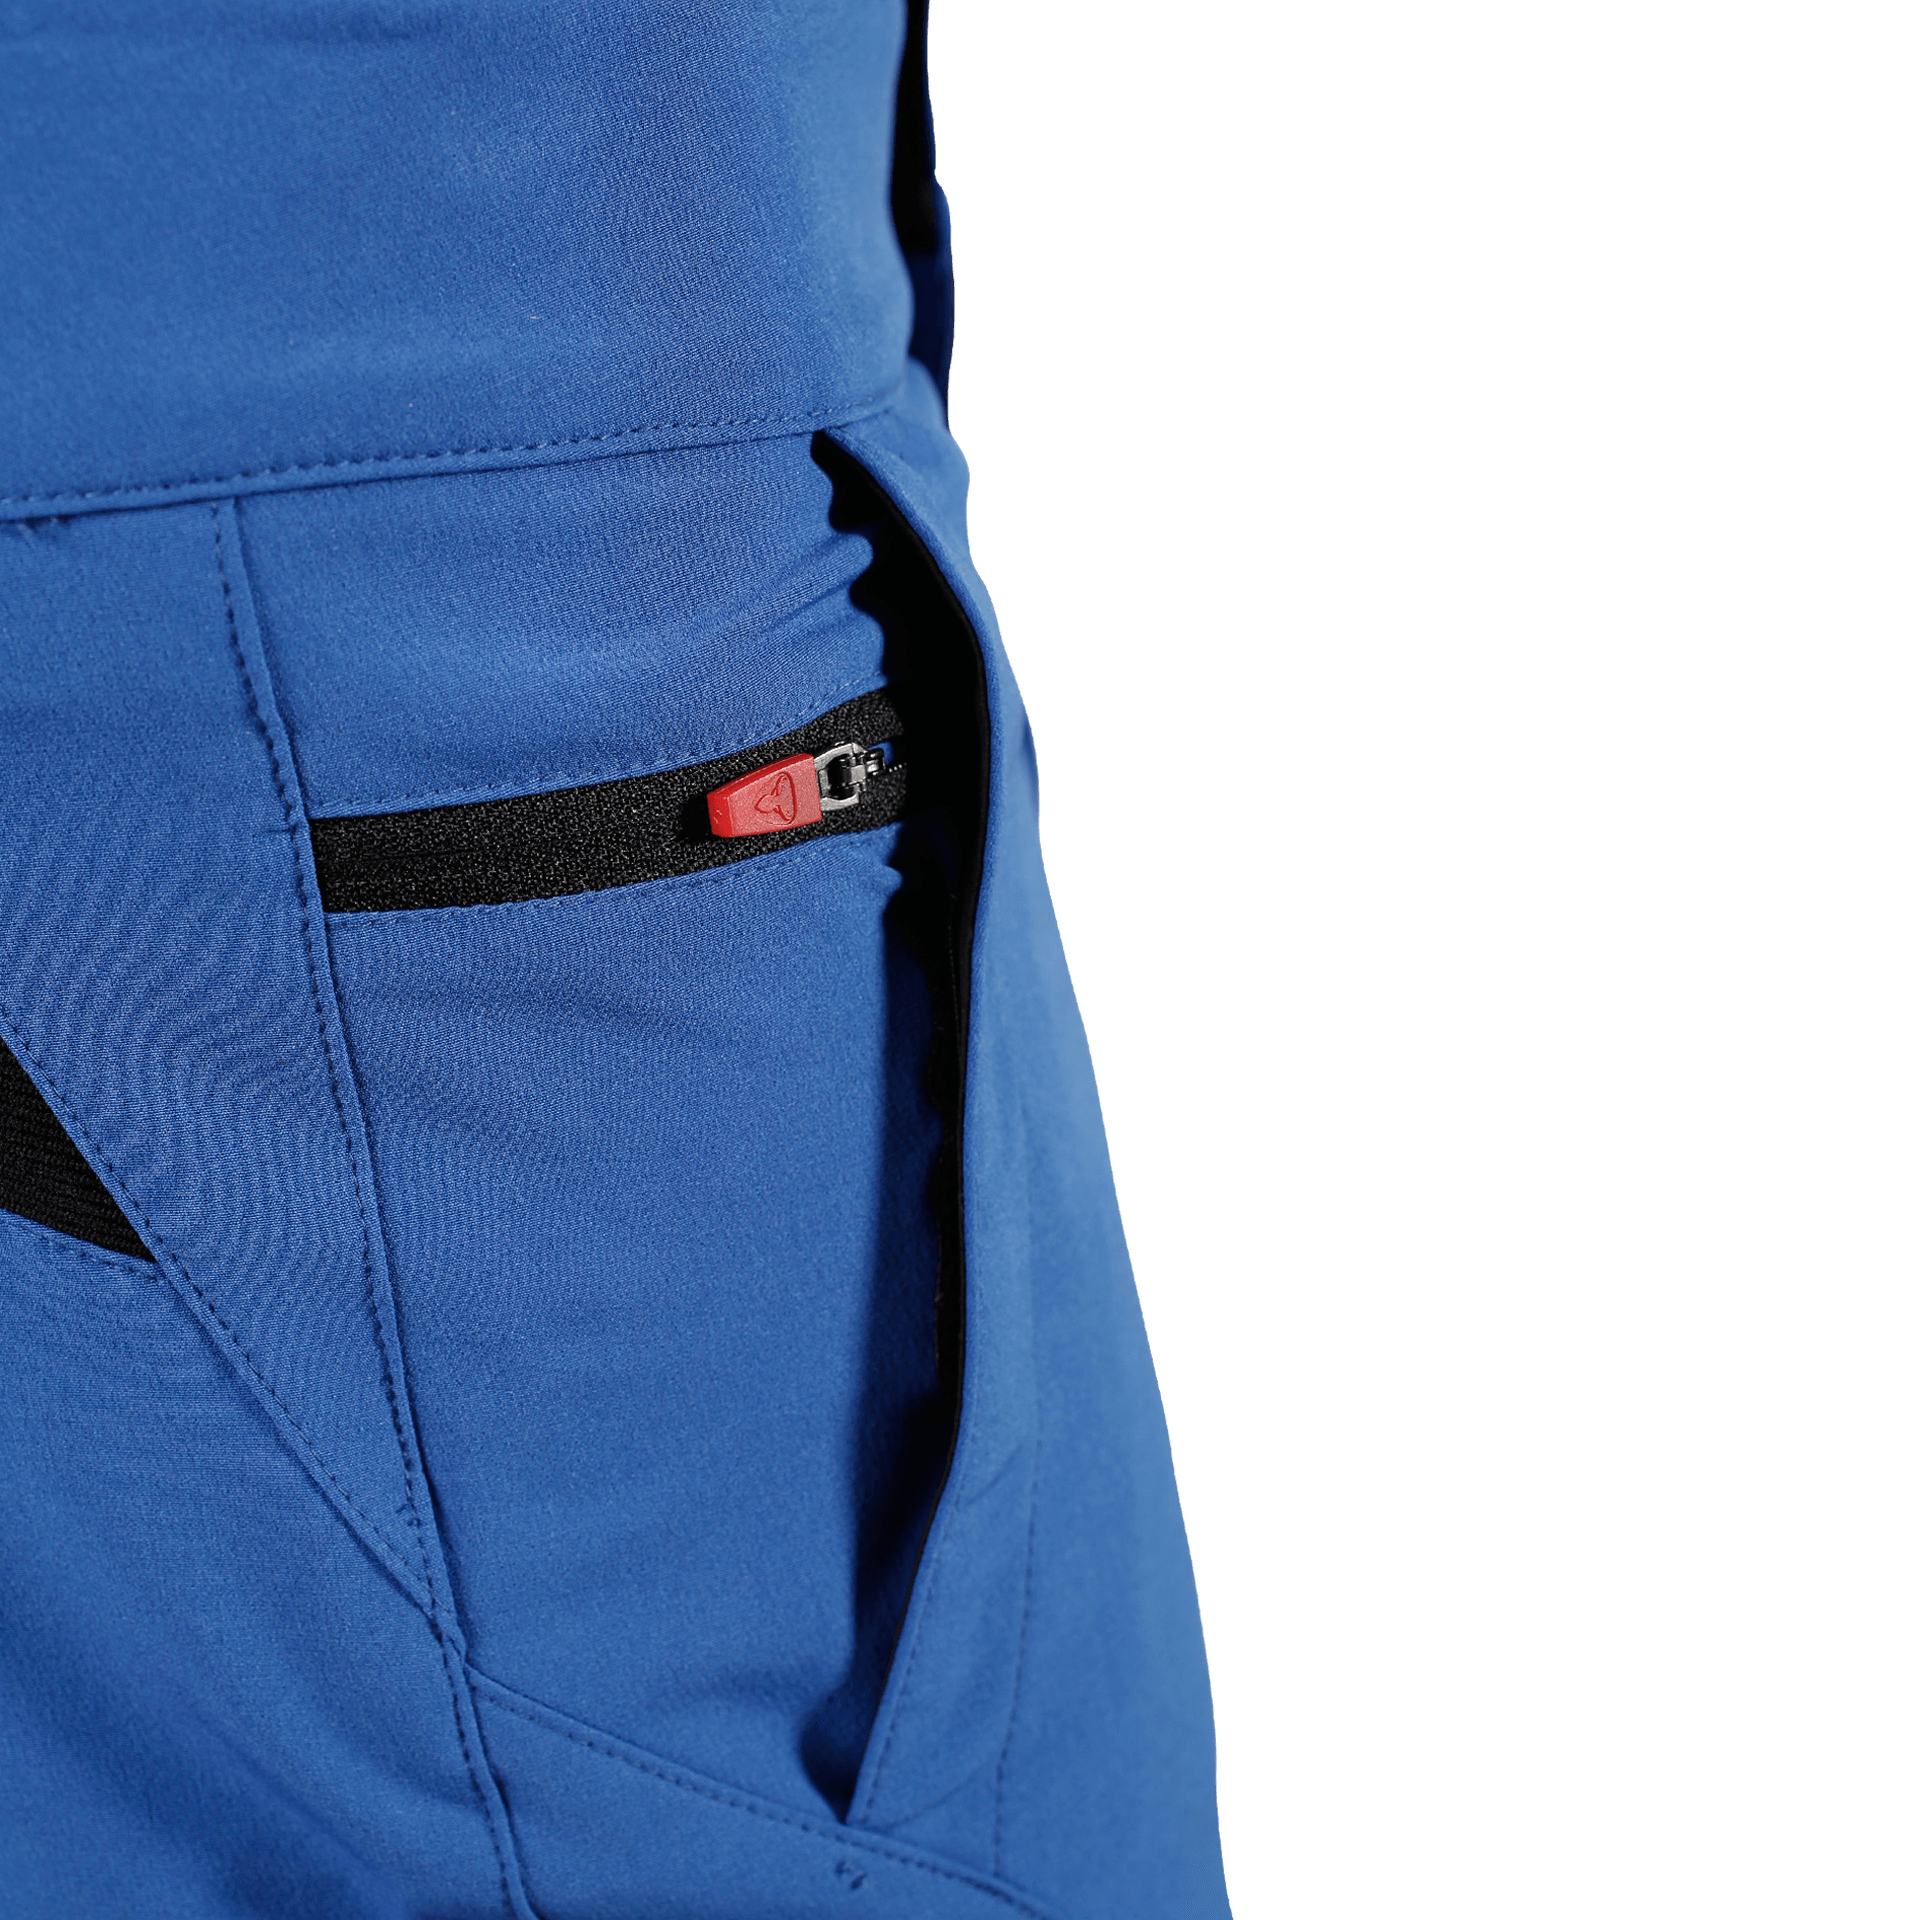 RCD TRAIL SHORT, BLUE - BLUE - XL - RCD TRAIL SHORT, BLUE - BLUE - XL